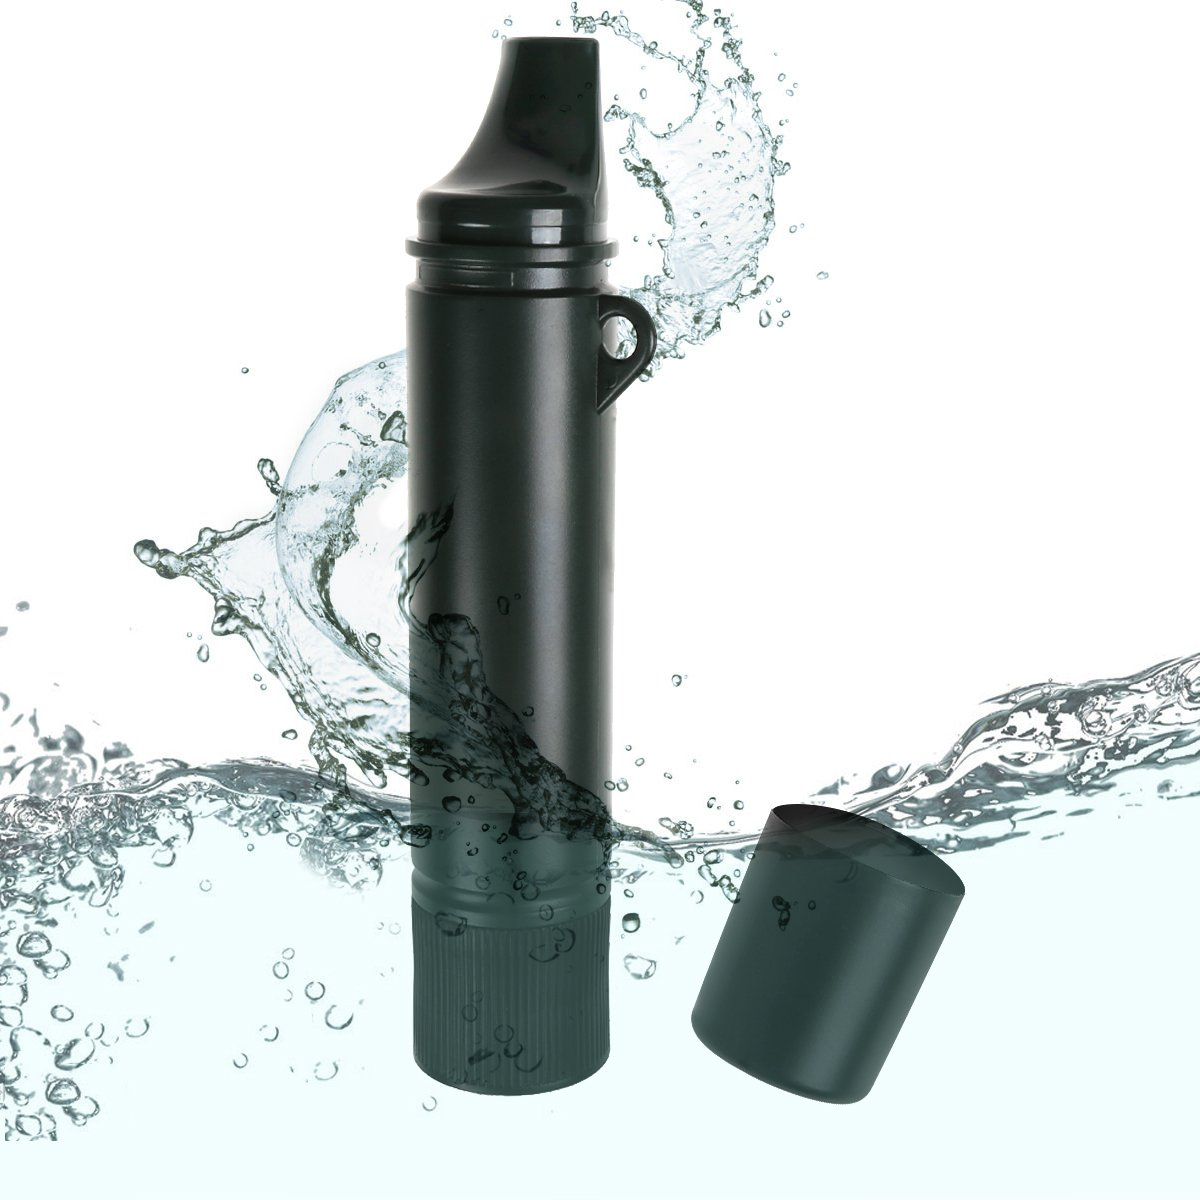 Ideapro Portable Water Filter, 1500L Personal Water Filtration Bottle Straw Water Purifier Field Survival Gear for Hiking, Camping, Traveling, Disaster Preparedness